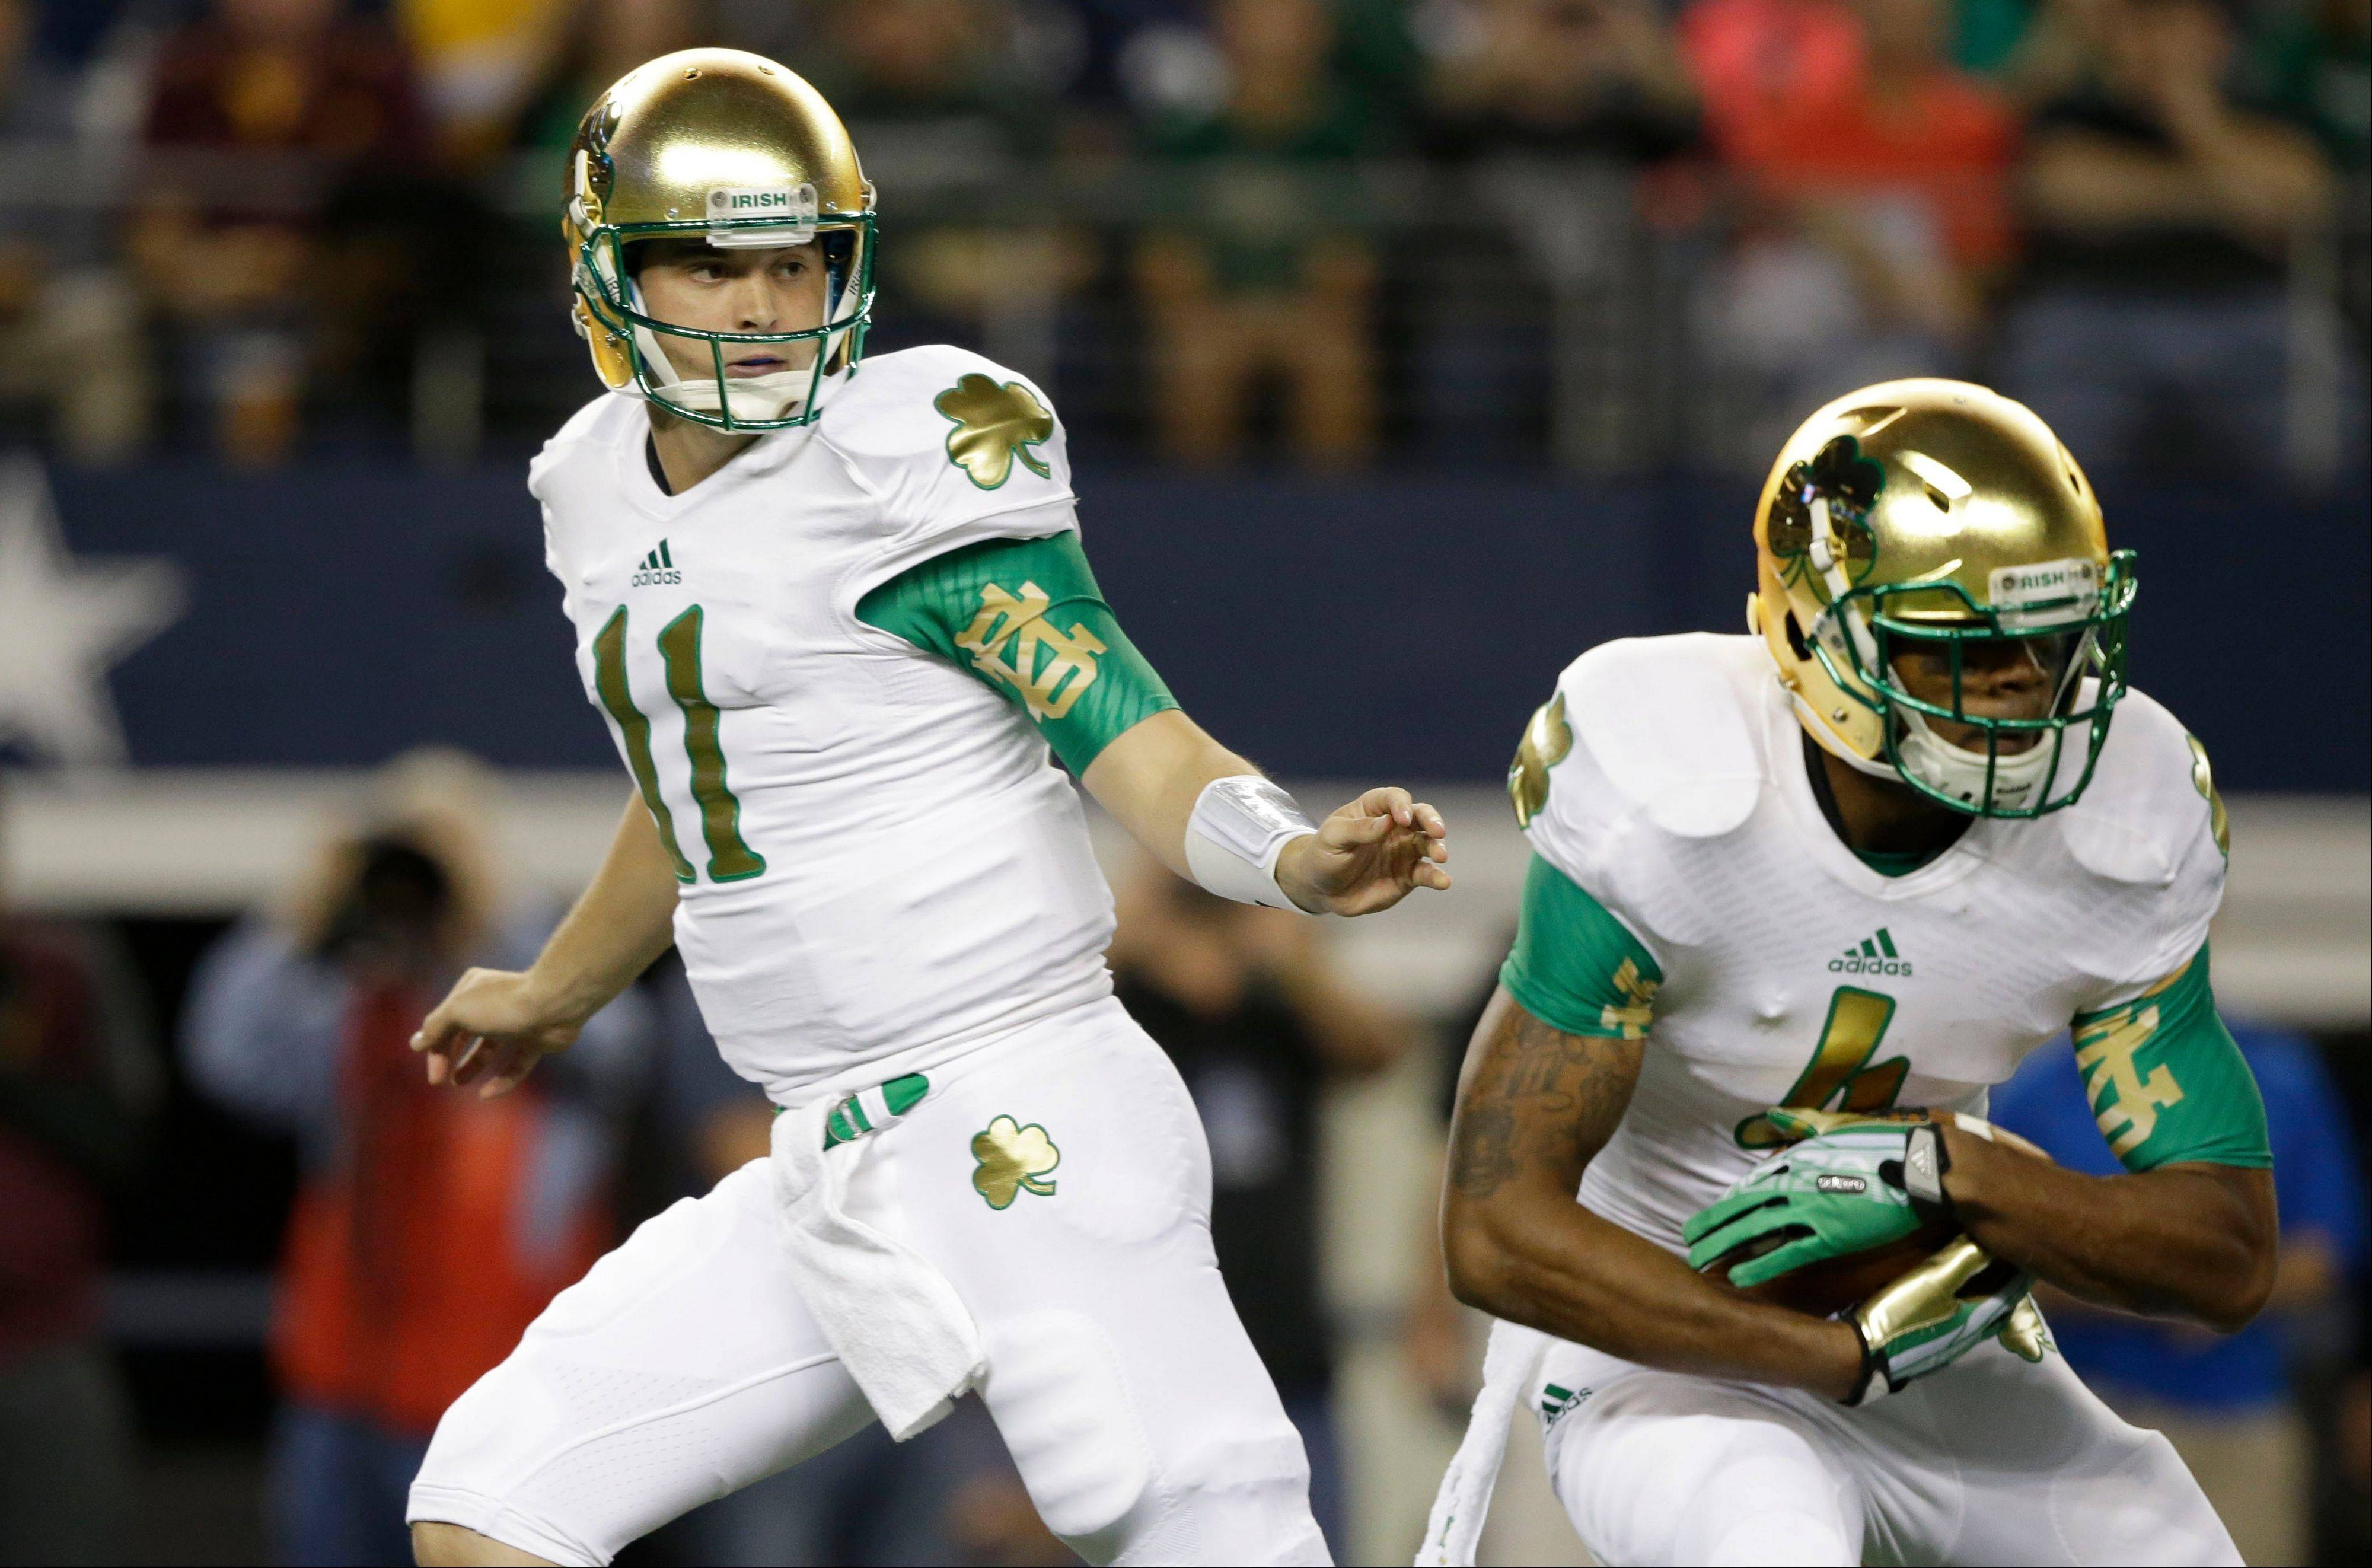 Notre Dame quarterback Tommy Rees (11) hands off to running back George Atkinson III during the first half of an NCAA college football game against Arizona State on Saturday, Oct. 5, 2013, in Arlington, Texas.